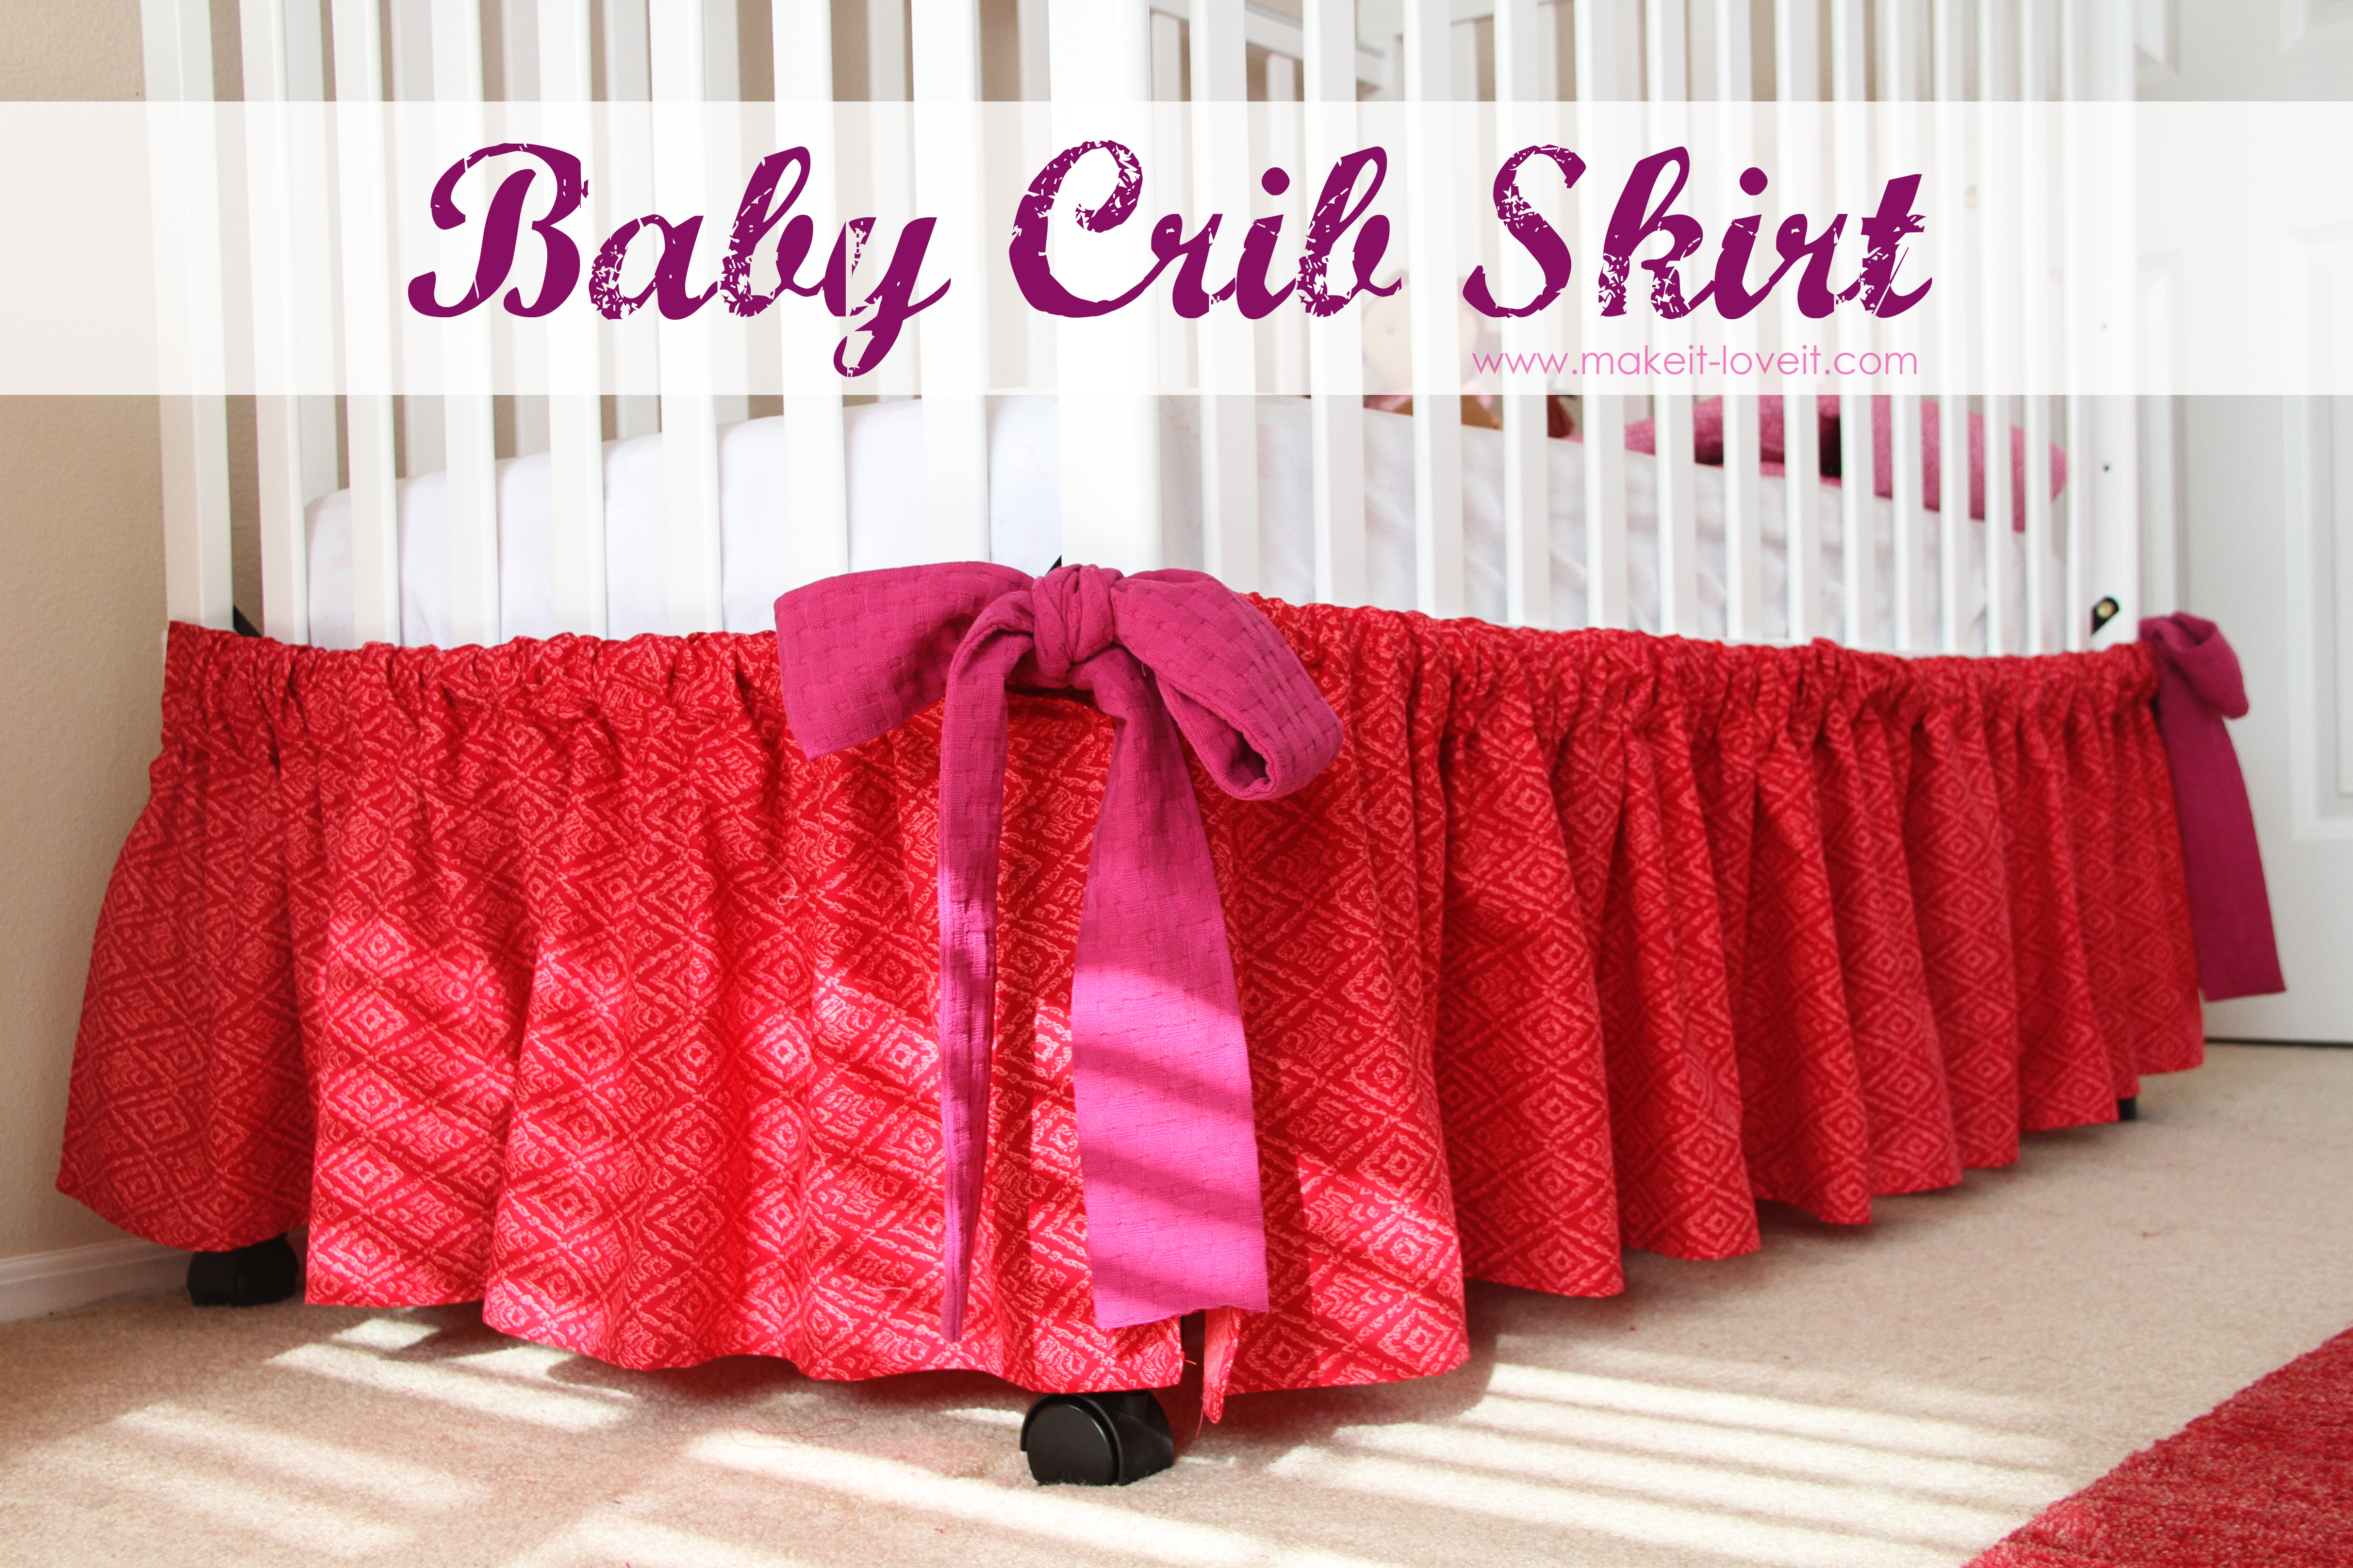 Baby Crib Skirt (a very basic one)